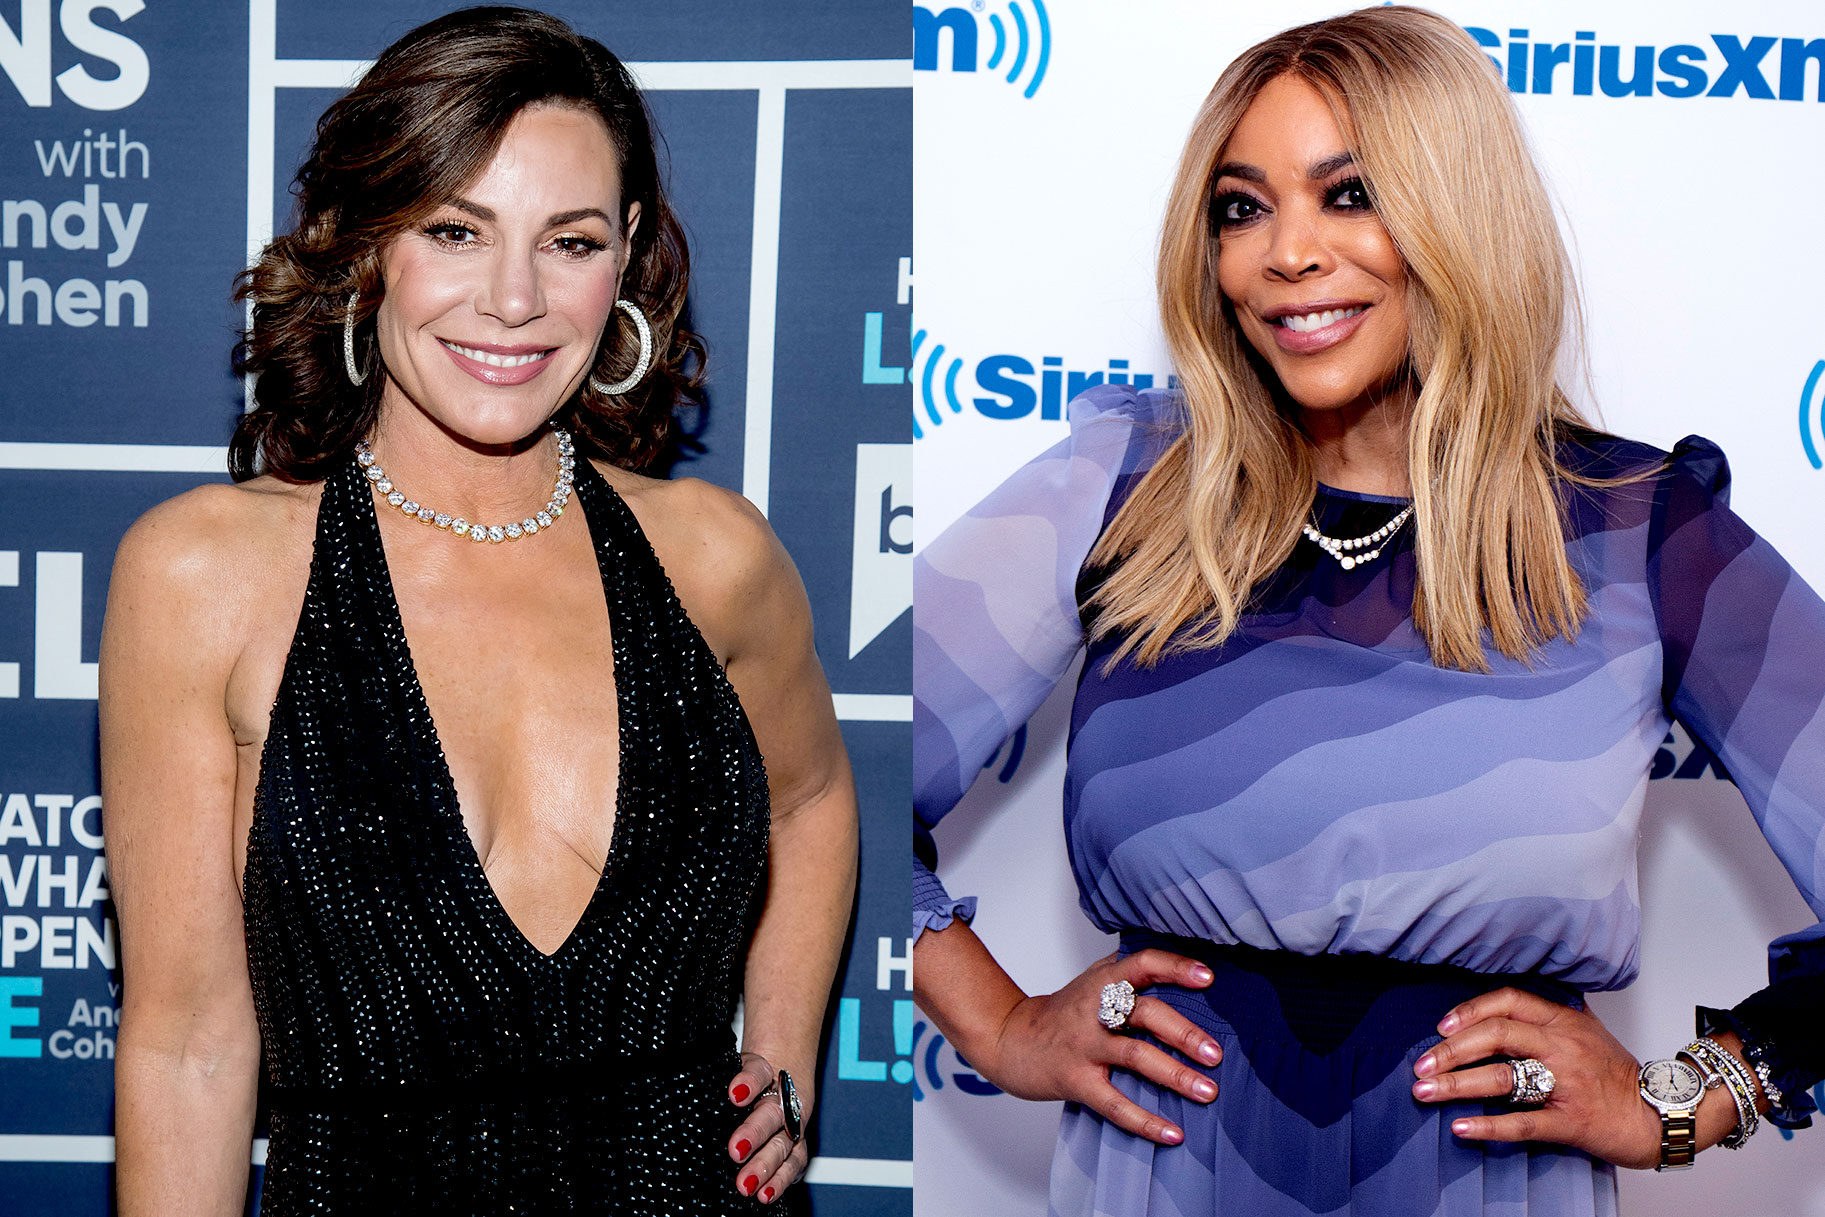 Luann de Lesseps, Wendy Williams